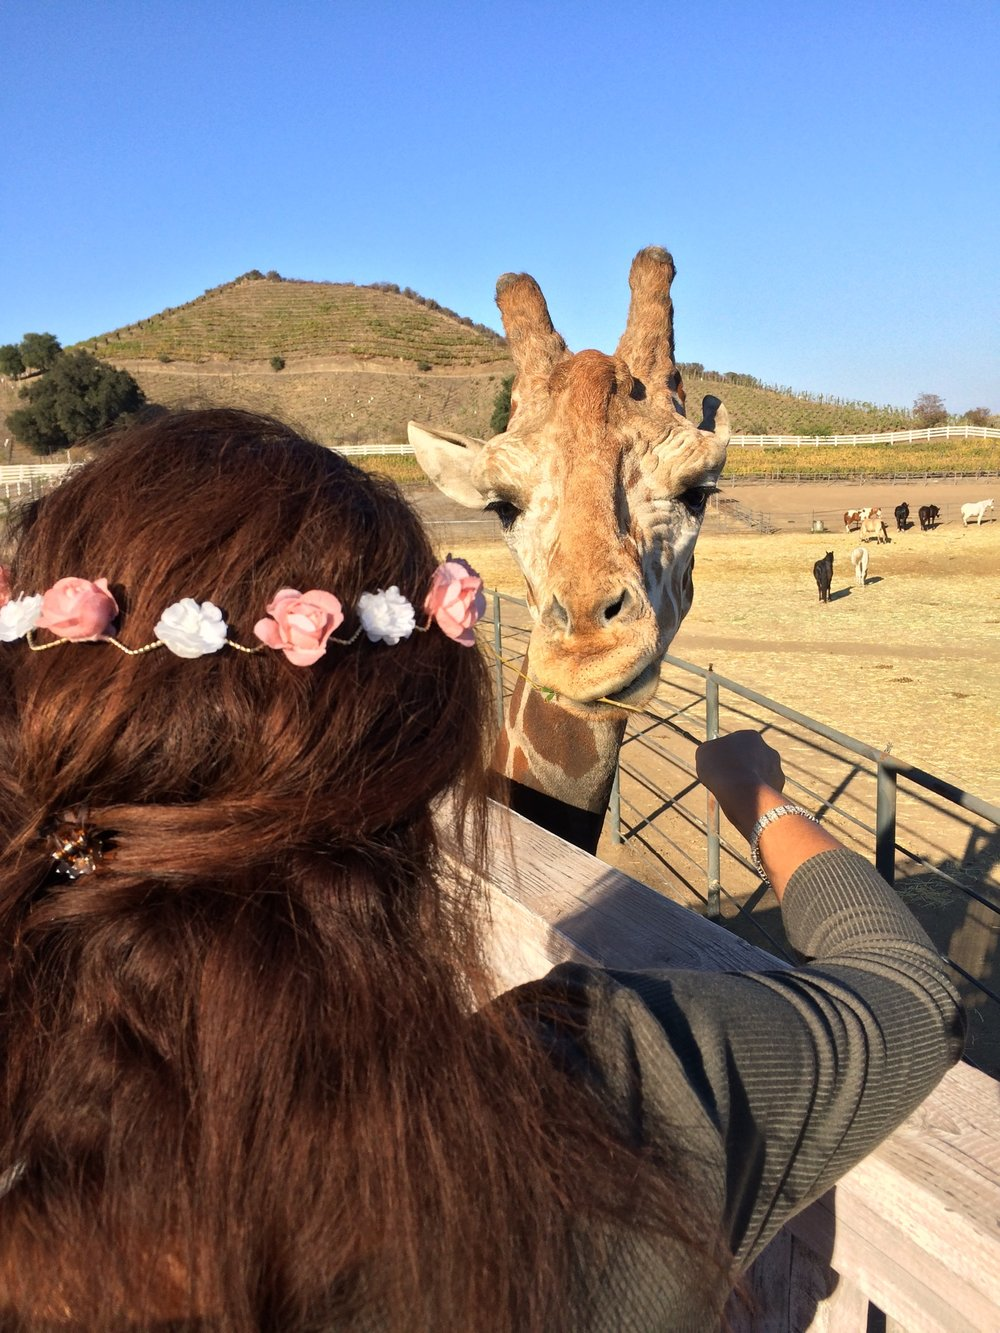 Stanley, the Giraffe is a celebrity in his own right, an a must-visit on a Malibu Wine Hike